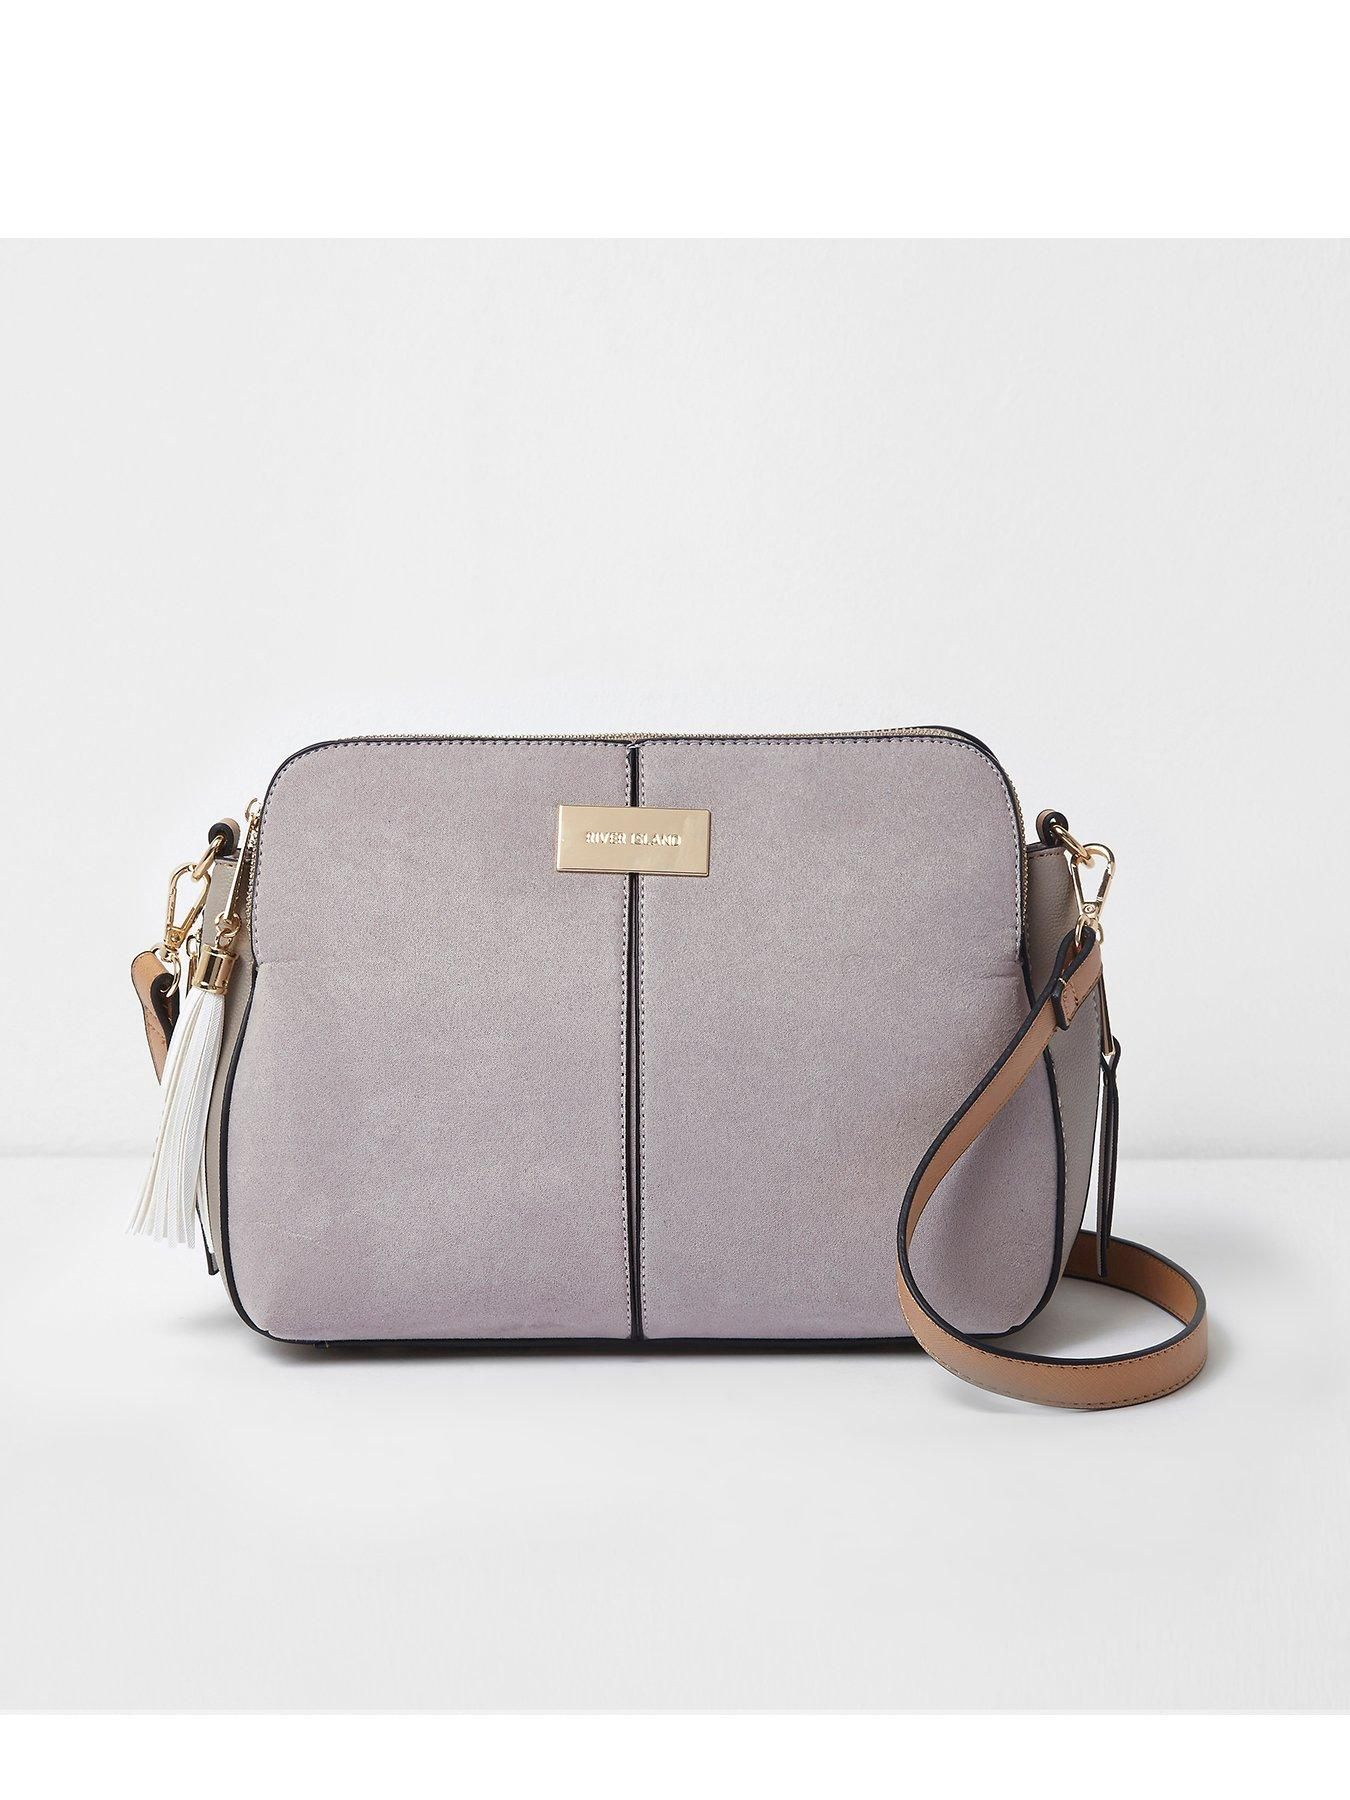 River Island River Island Medium Triple Compartment Cross Body Bag- Grey  0fc4c0fb02ca3